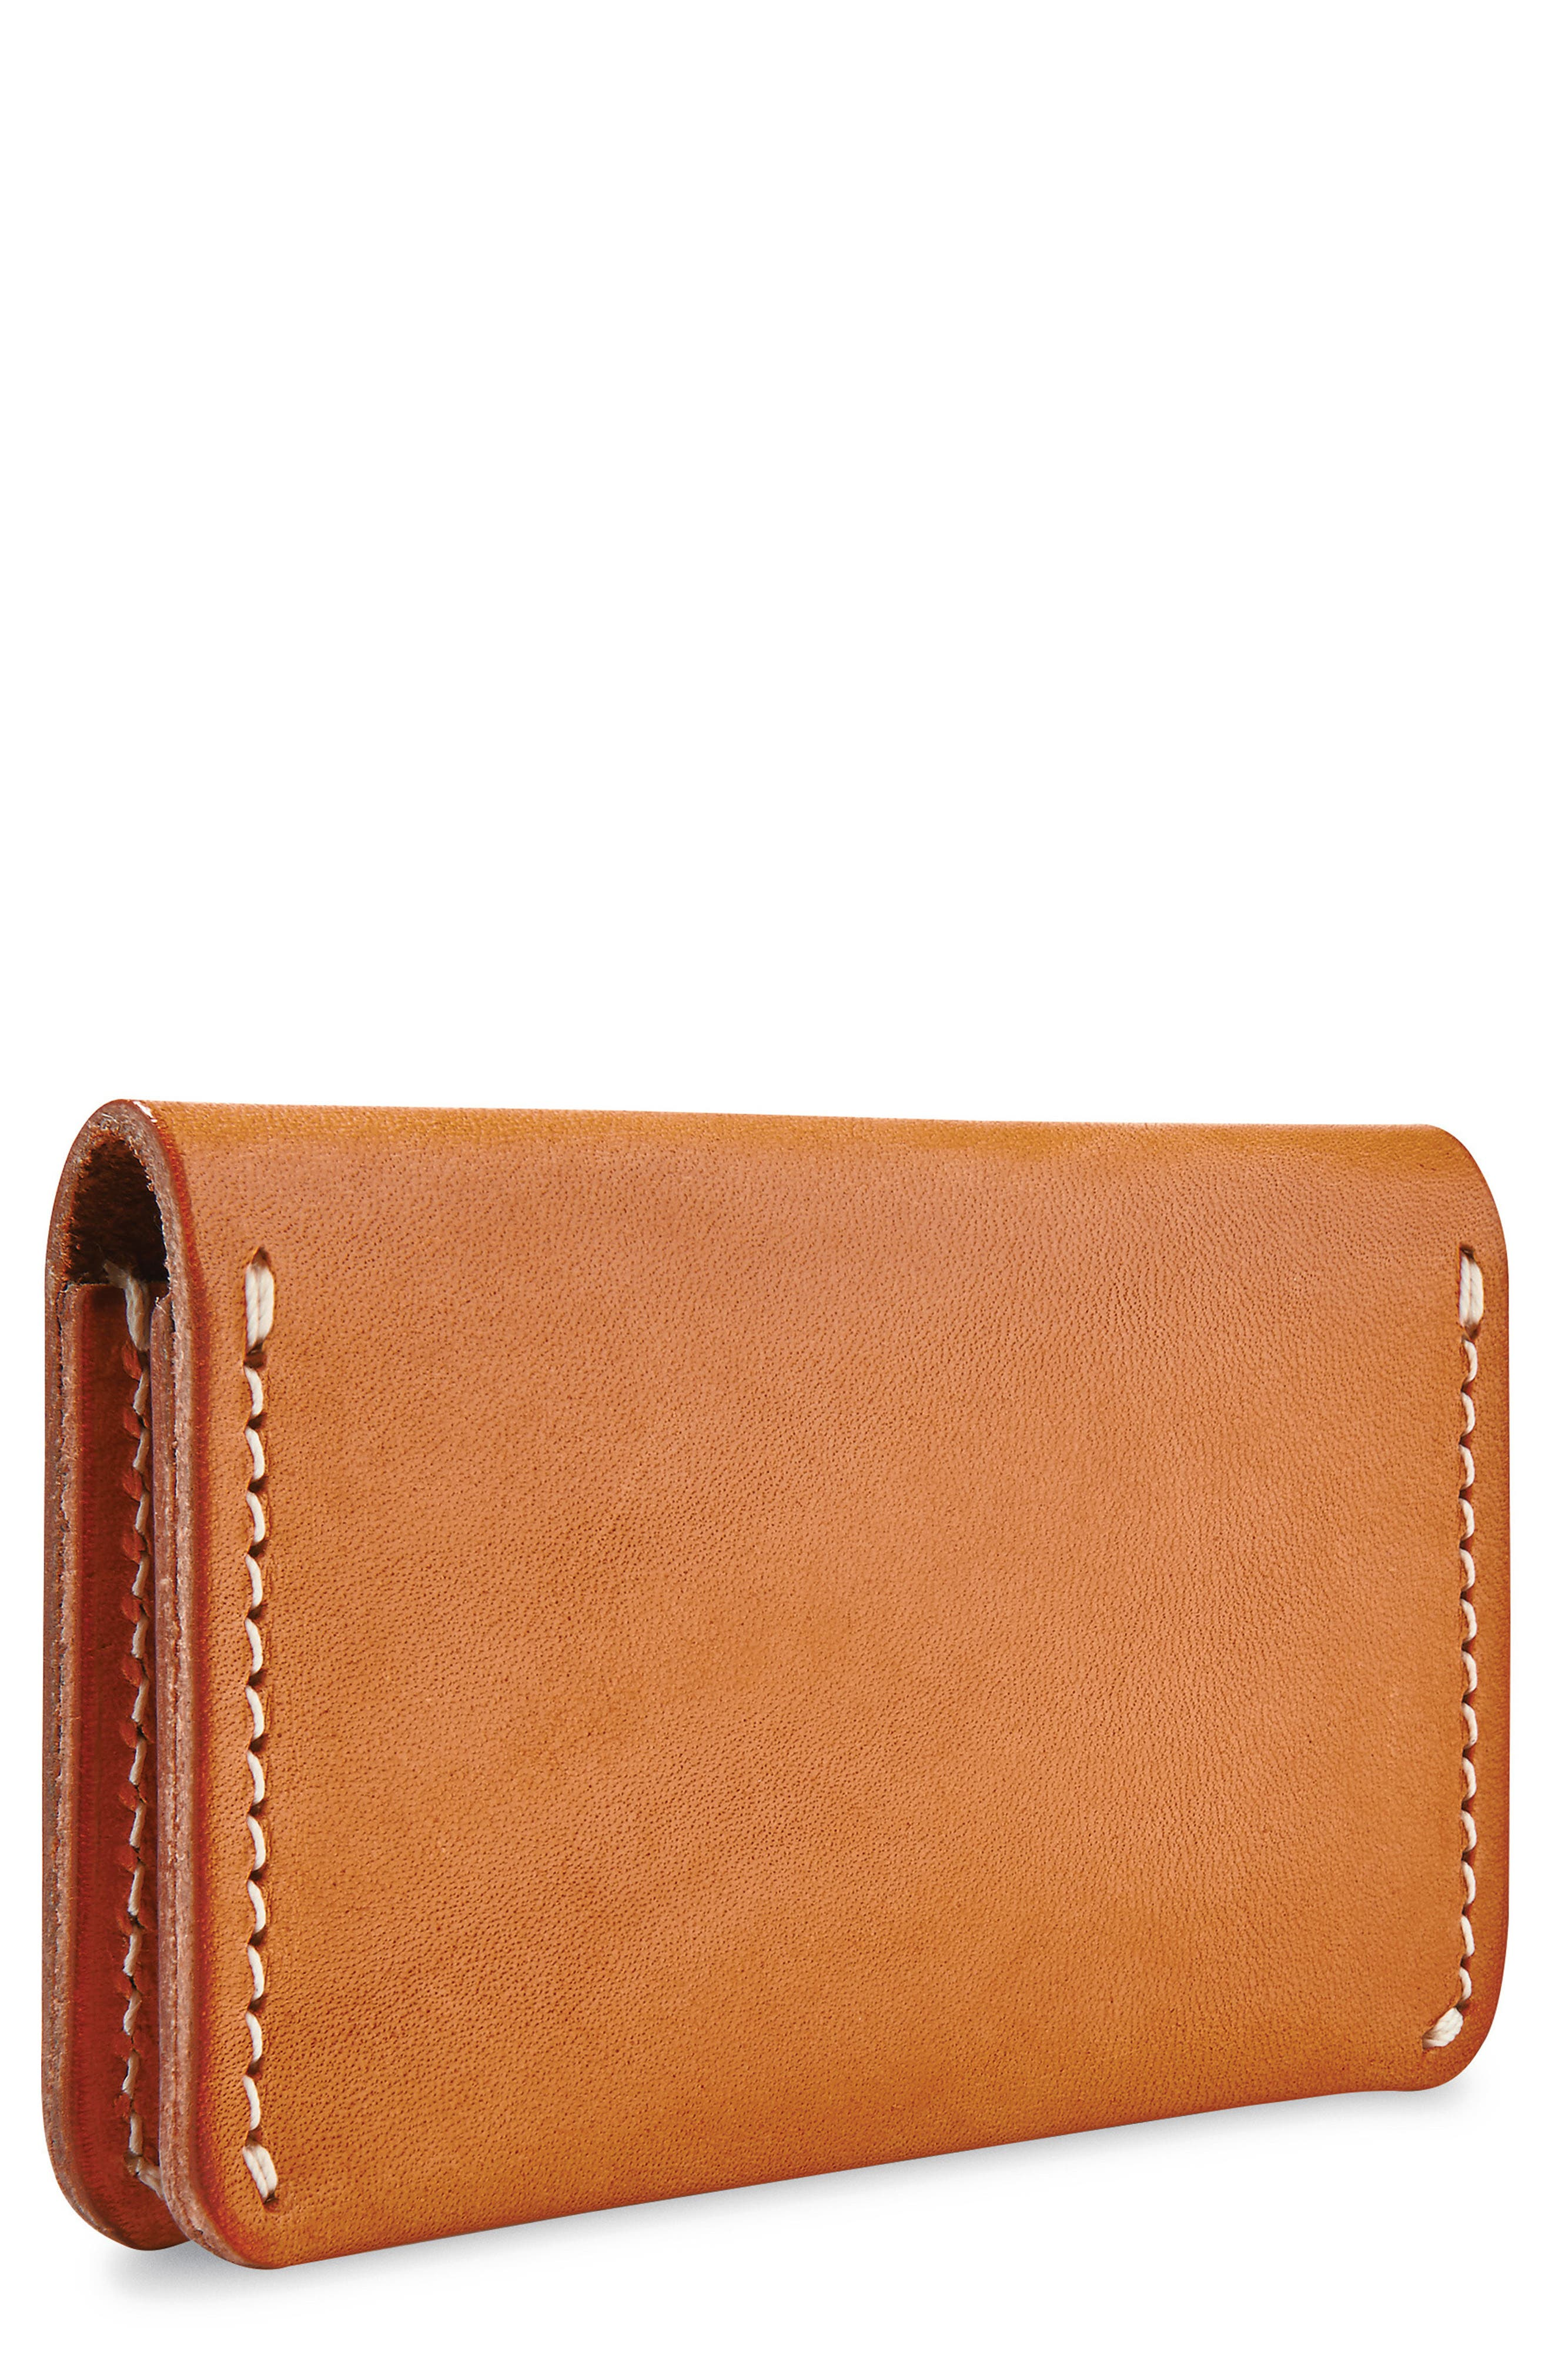 Leather Card Holder,                             Main thumbnail 1, color,                             TANNED VEGETABLE